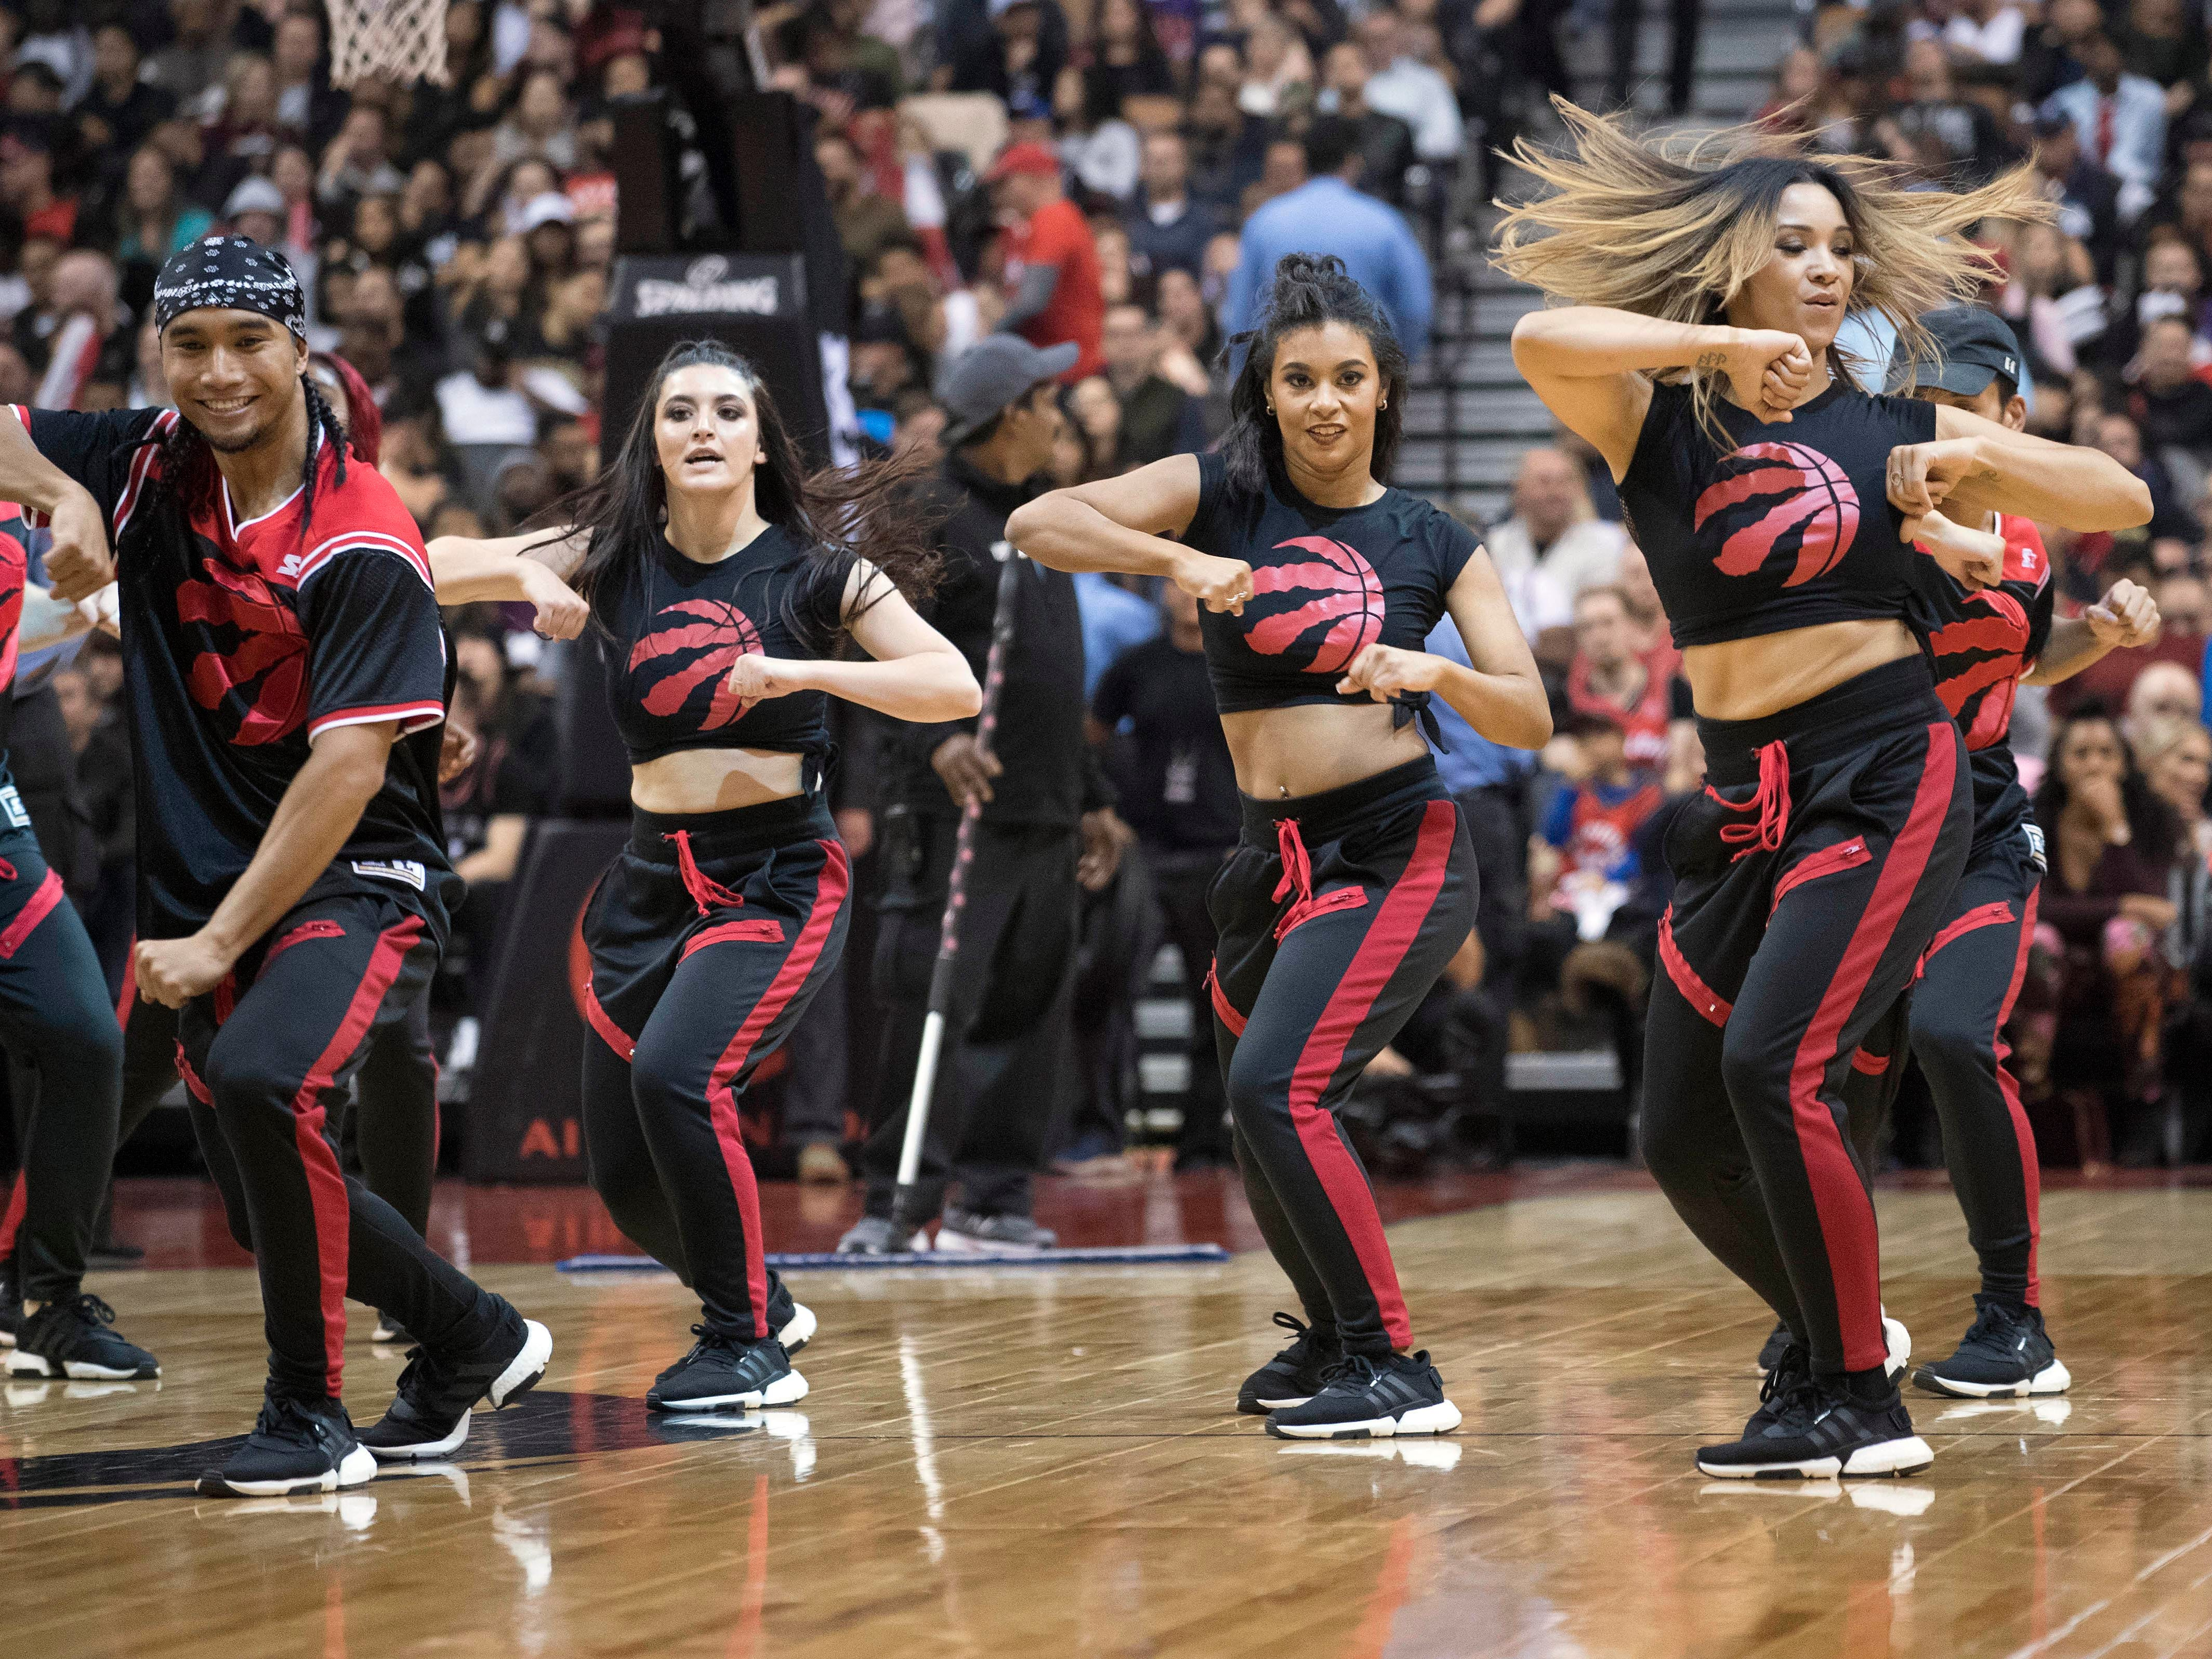 Oct 22: The Toronto Raptors Dance Pak performs during the fourth quarter against the Charlotte Hornets at Scotiabank Arena.